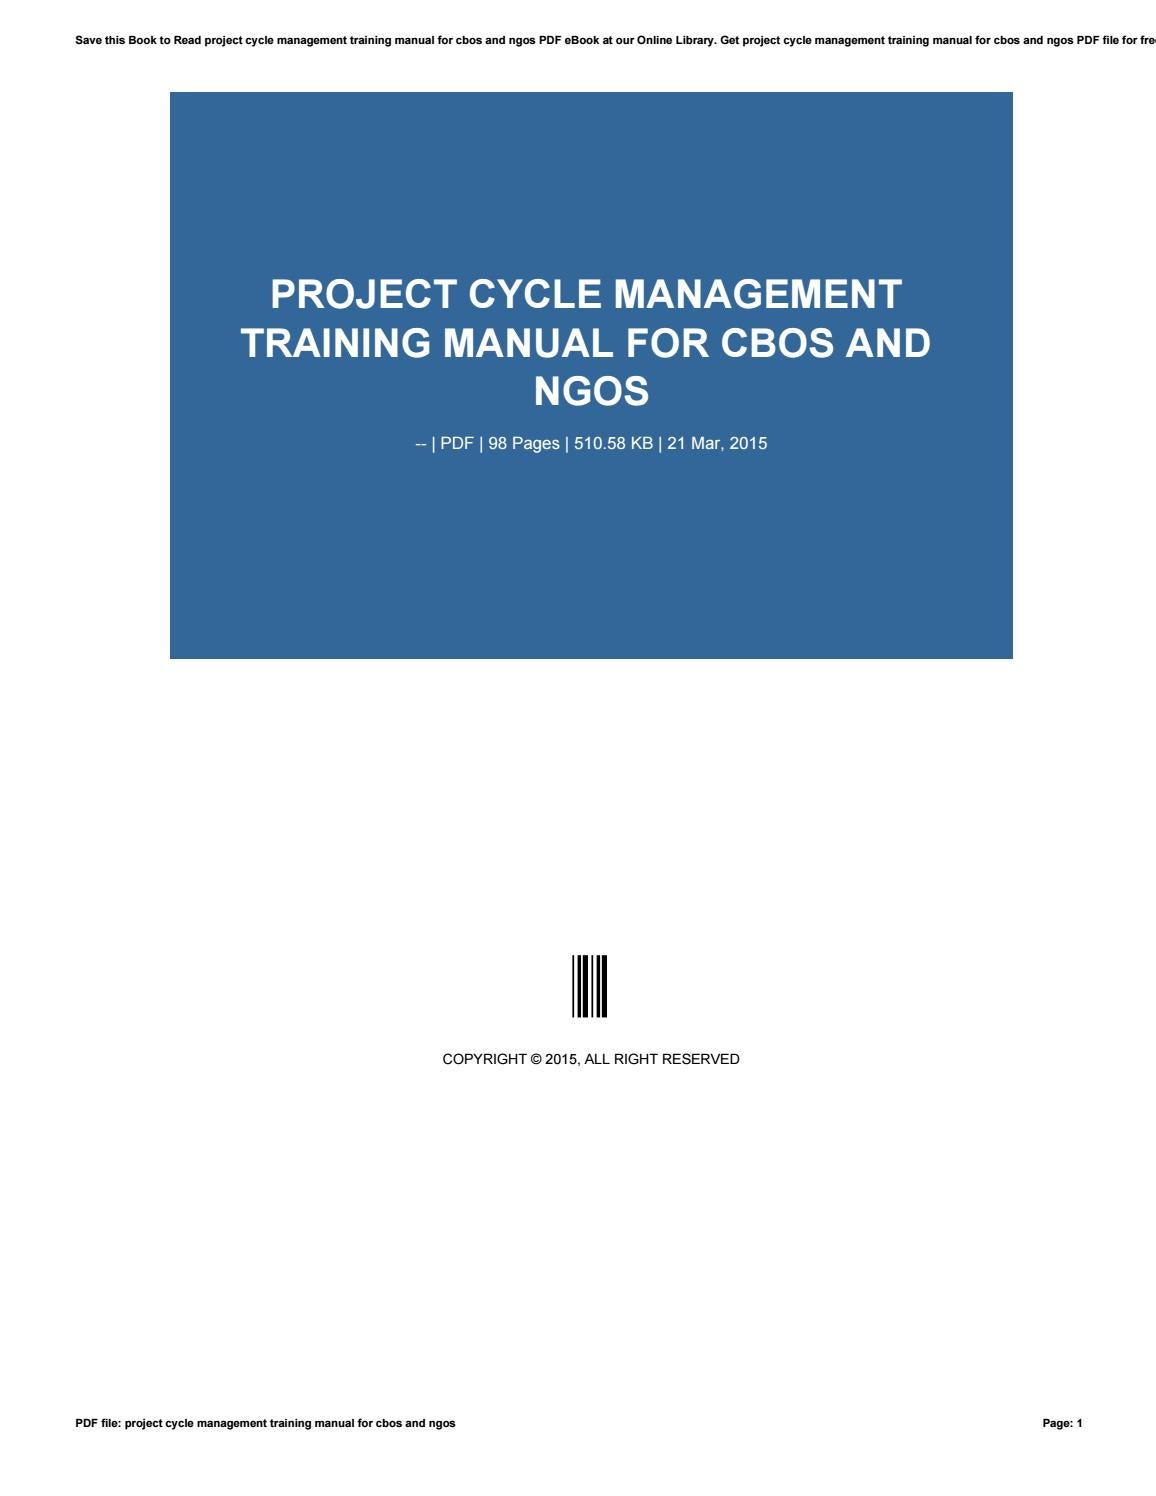 training manual for retail store manager